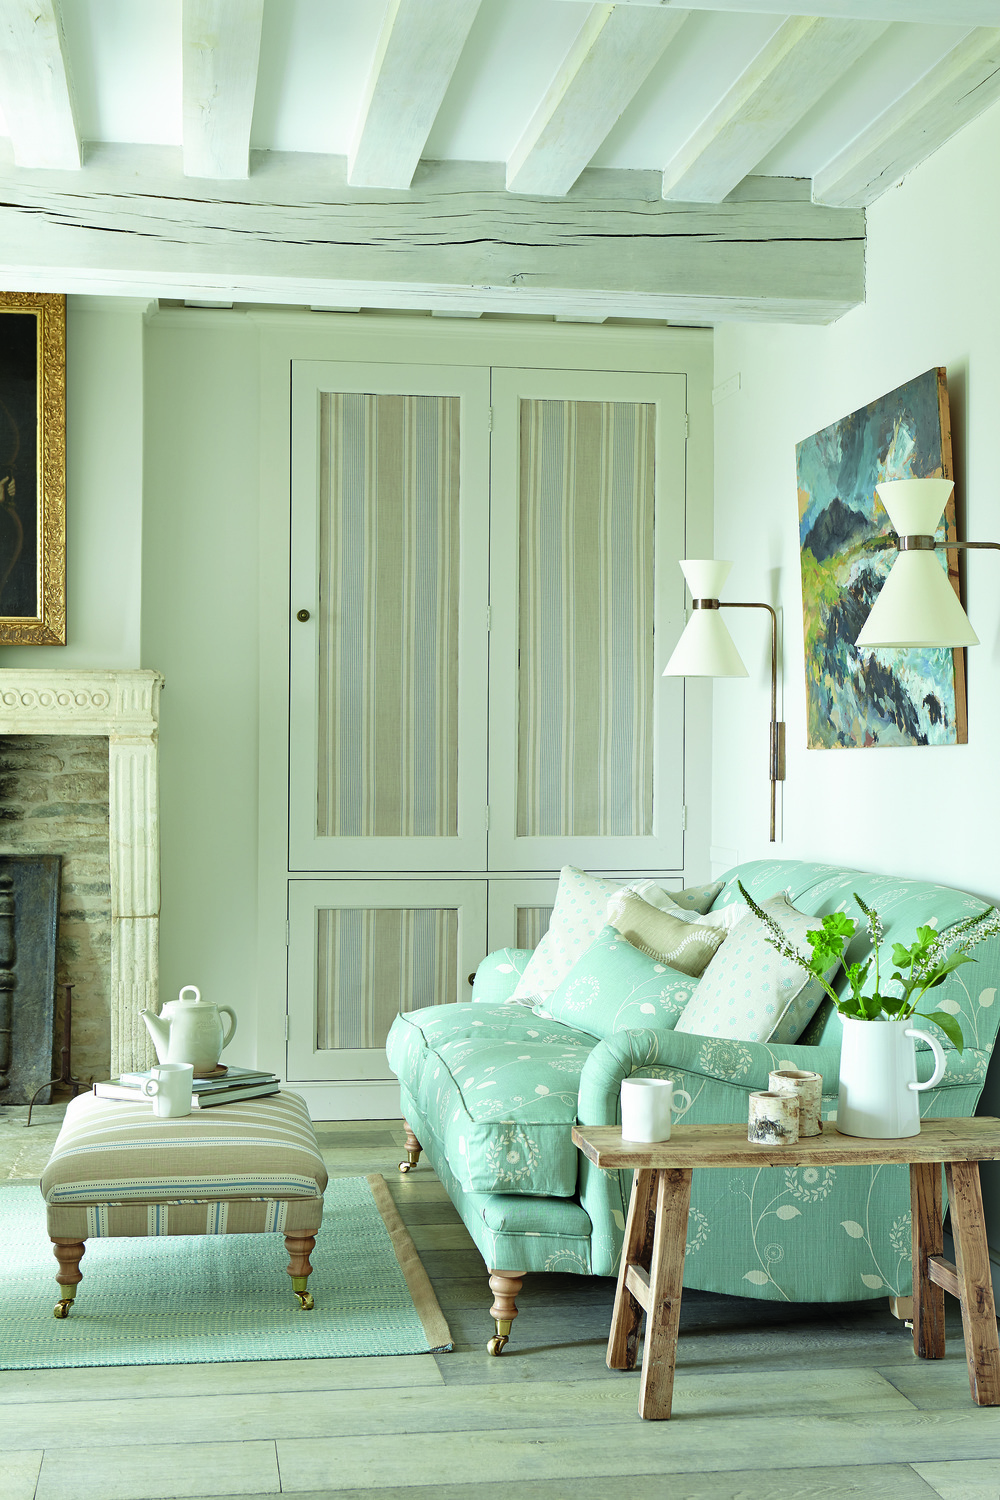 A Cosy Country Living Room by Vanessa Arbuthnott